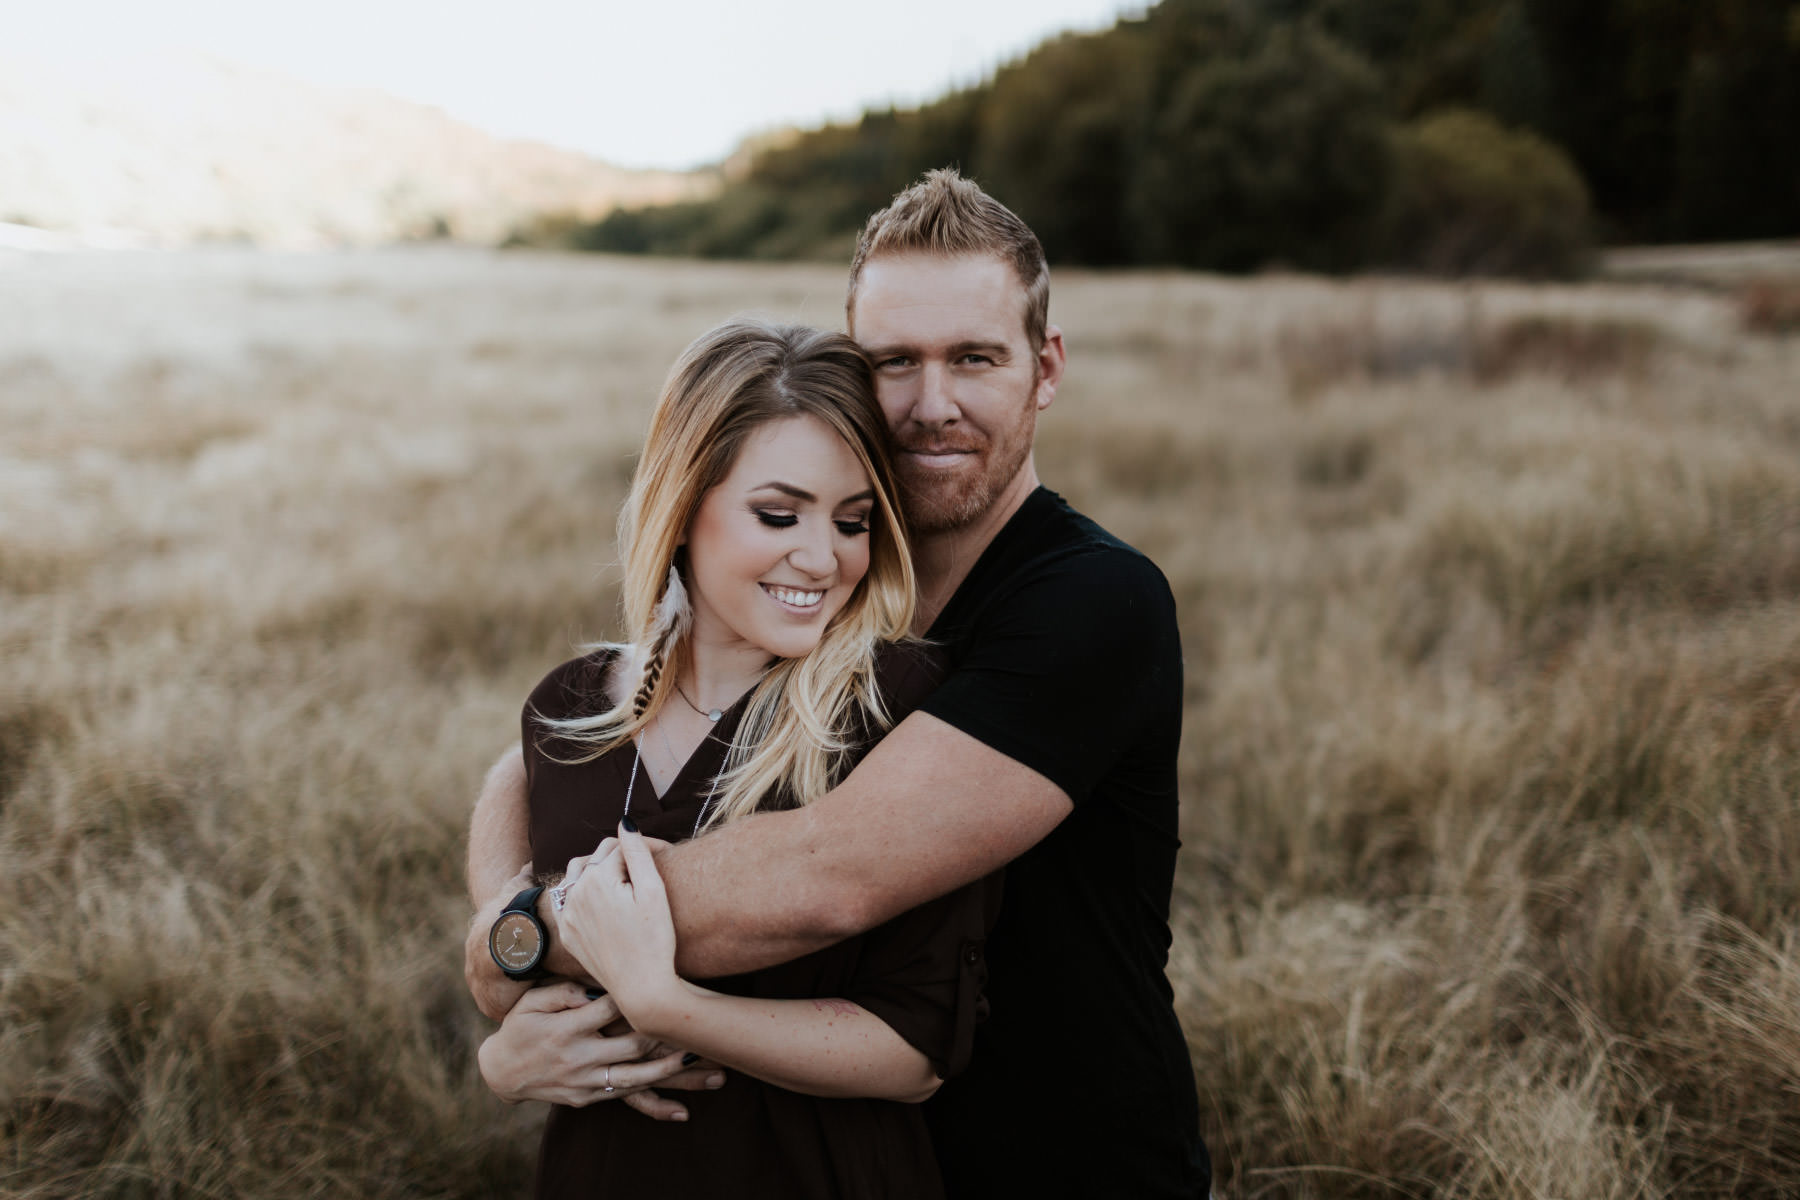 Engaged couple embracing in a field at Palomar Mountain